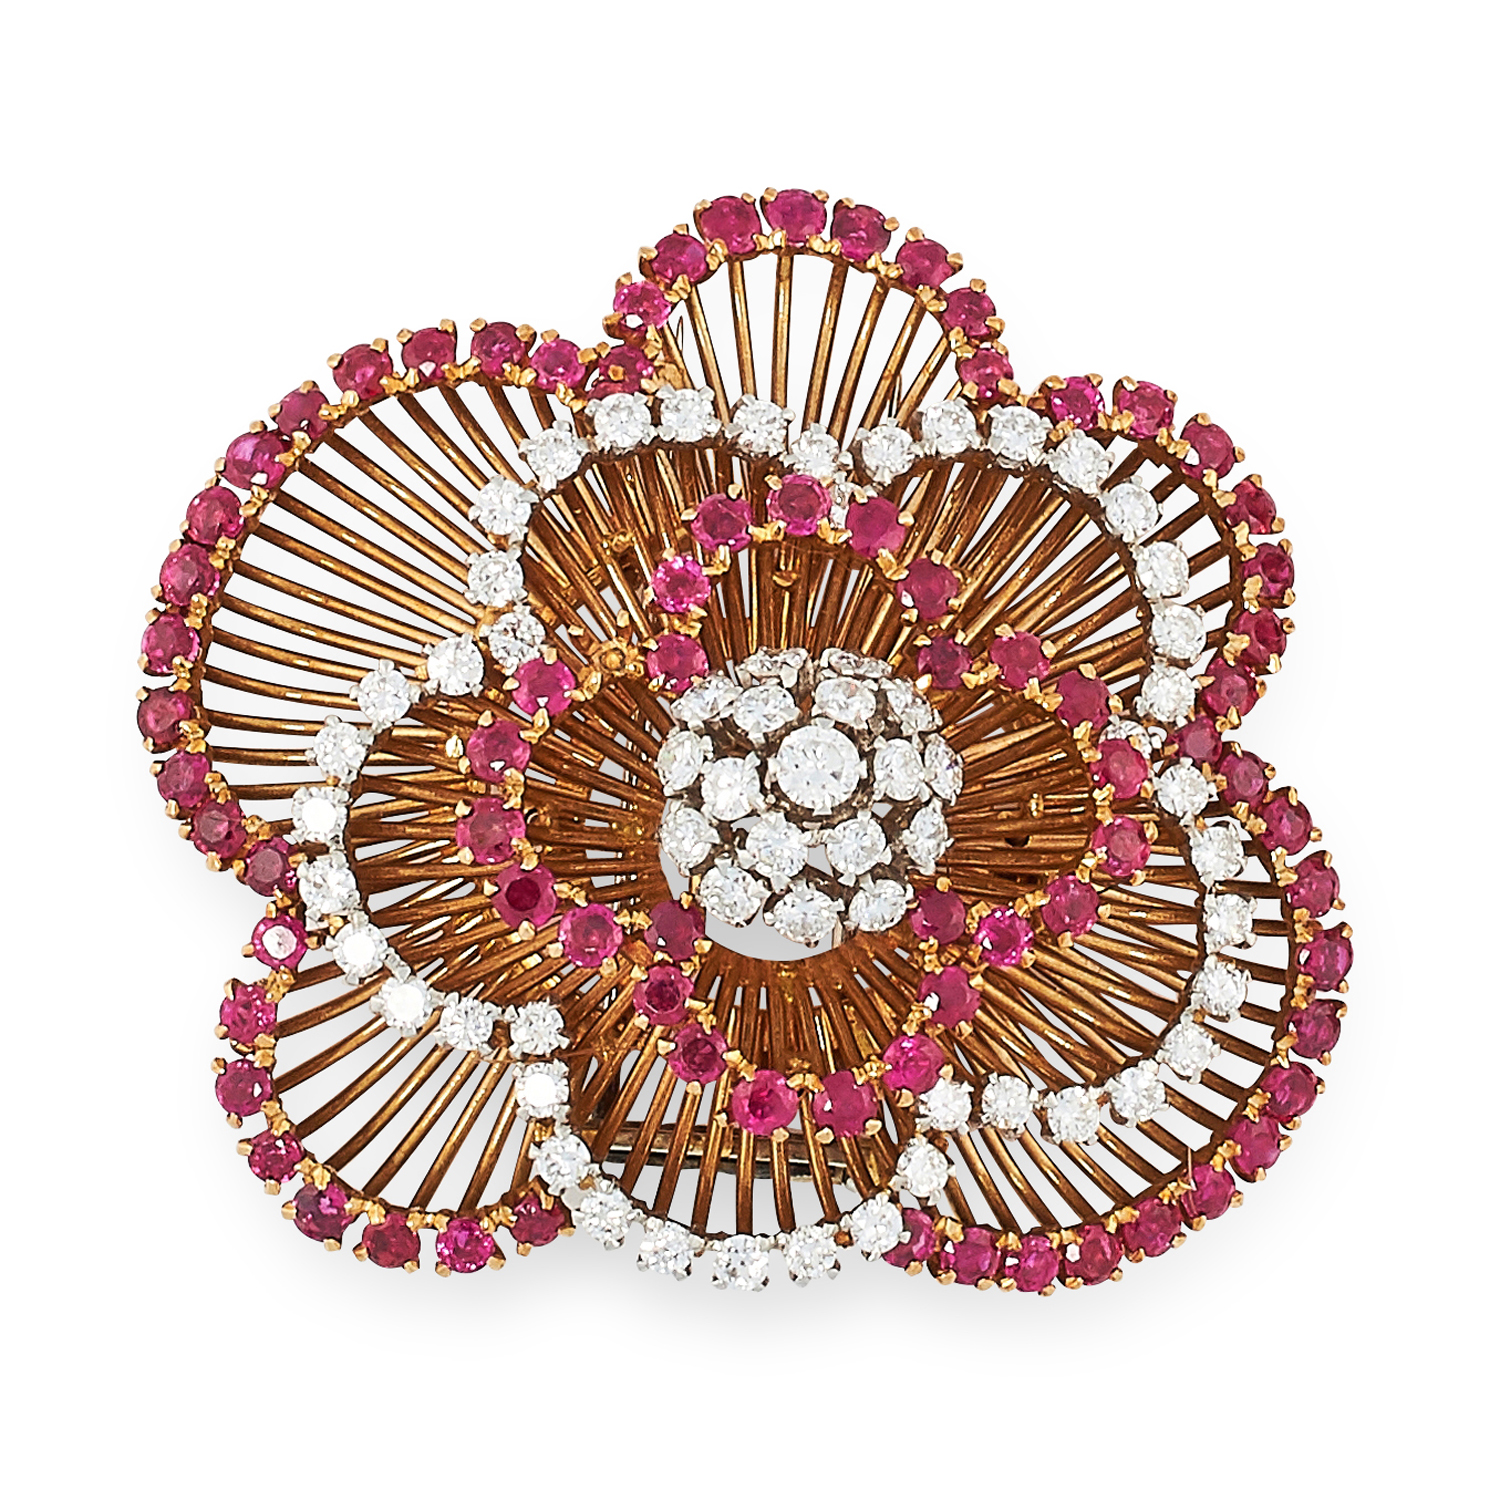 A VINTAGE RUBY AND DIAMOND BROOCH, CIRCA 1960 in high carat yellow gold, designed as a cluster of - Image 2 of 2